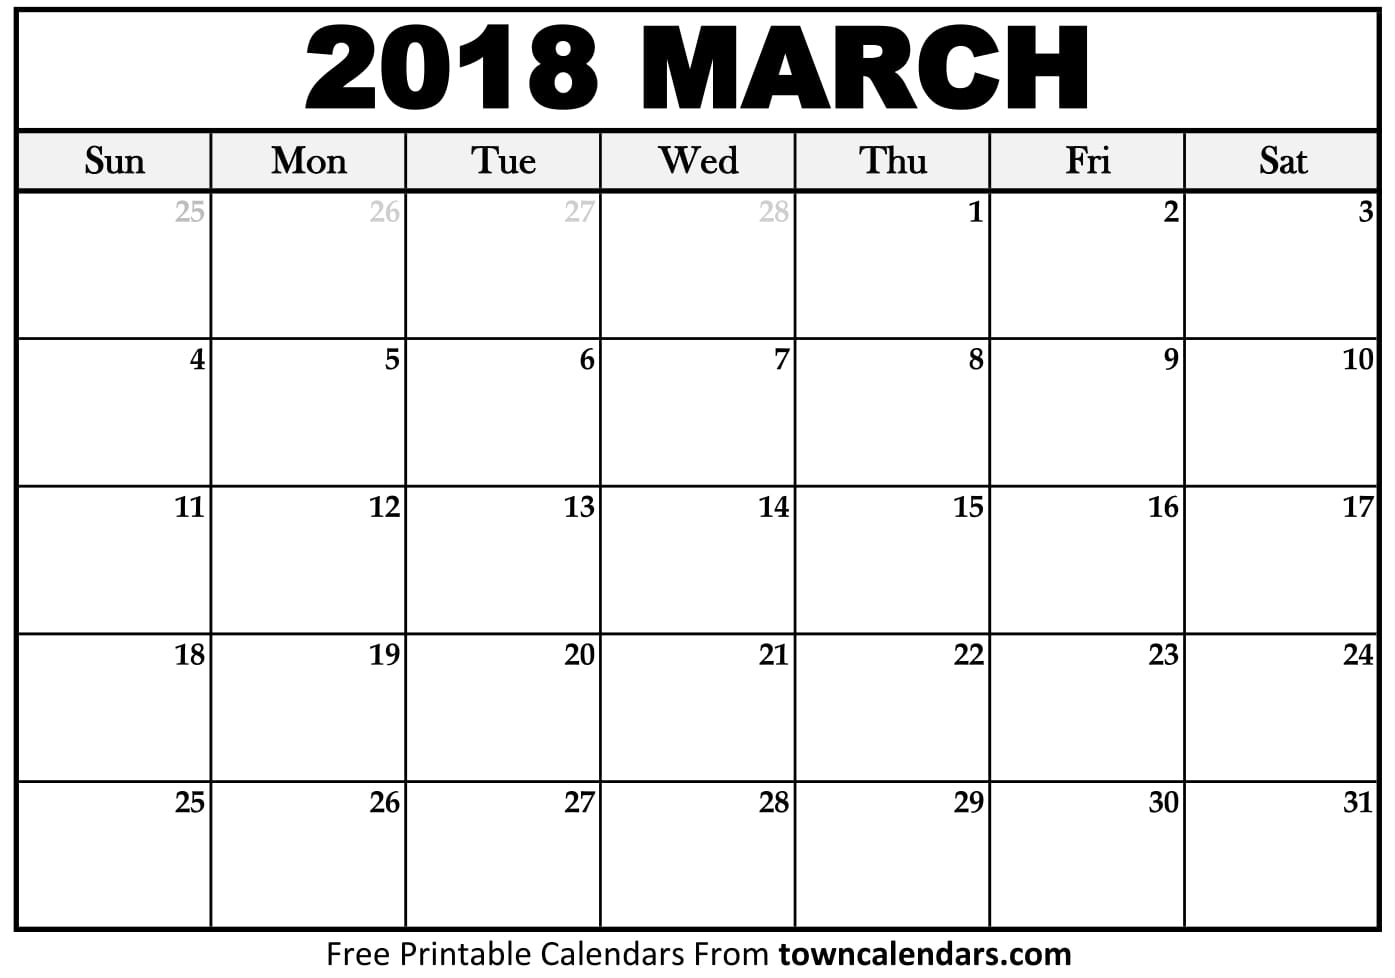 Calendar March 2018 : Printable march calendar towncalendars